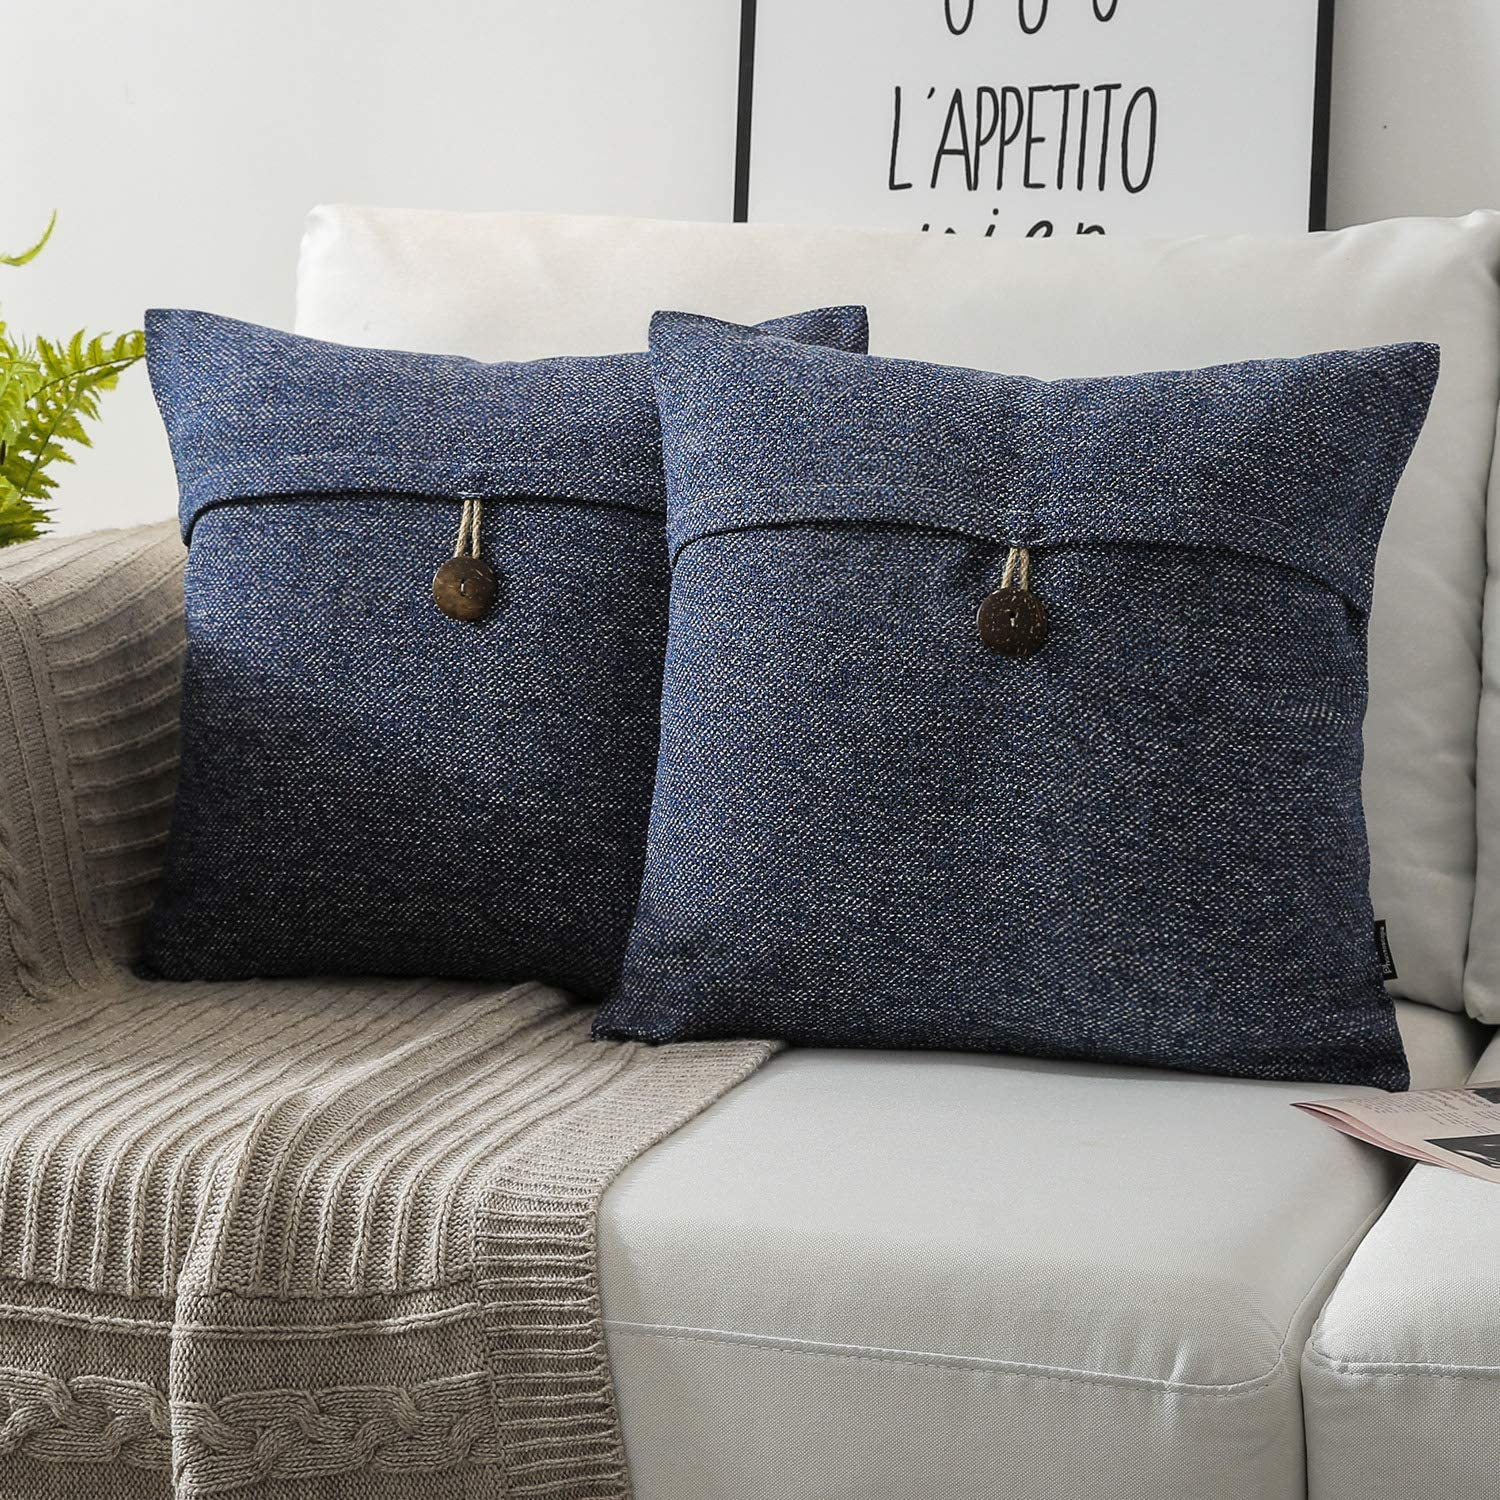 Phantoscope Pack of 2 Farmhouse Throw Pillow Covers Button Vintage Linen Decorative Pillow Cases for Couch Bed and Chair Navy Blue 22 x 22 inches 55 x 55 cm